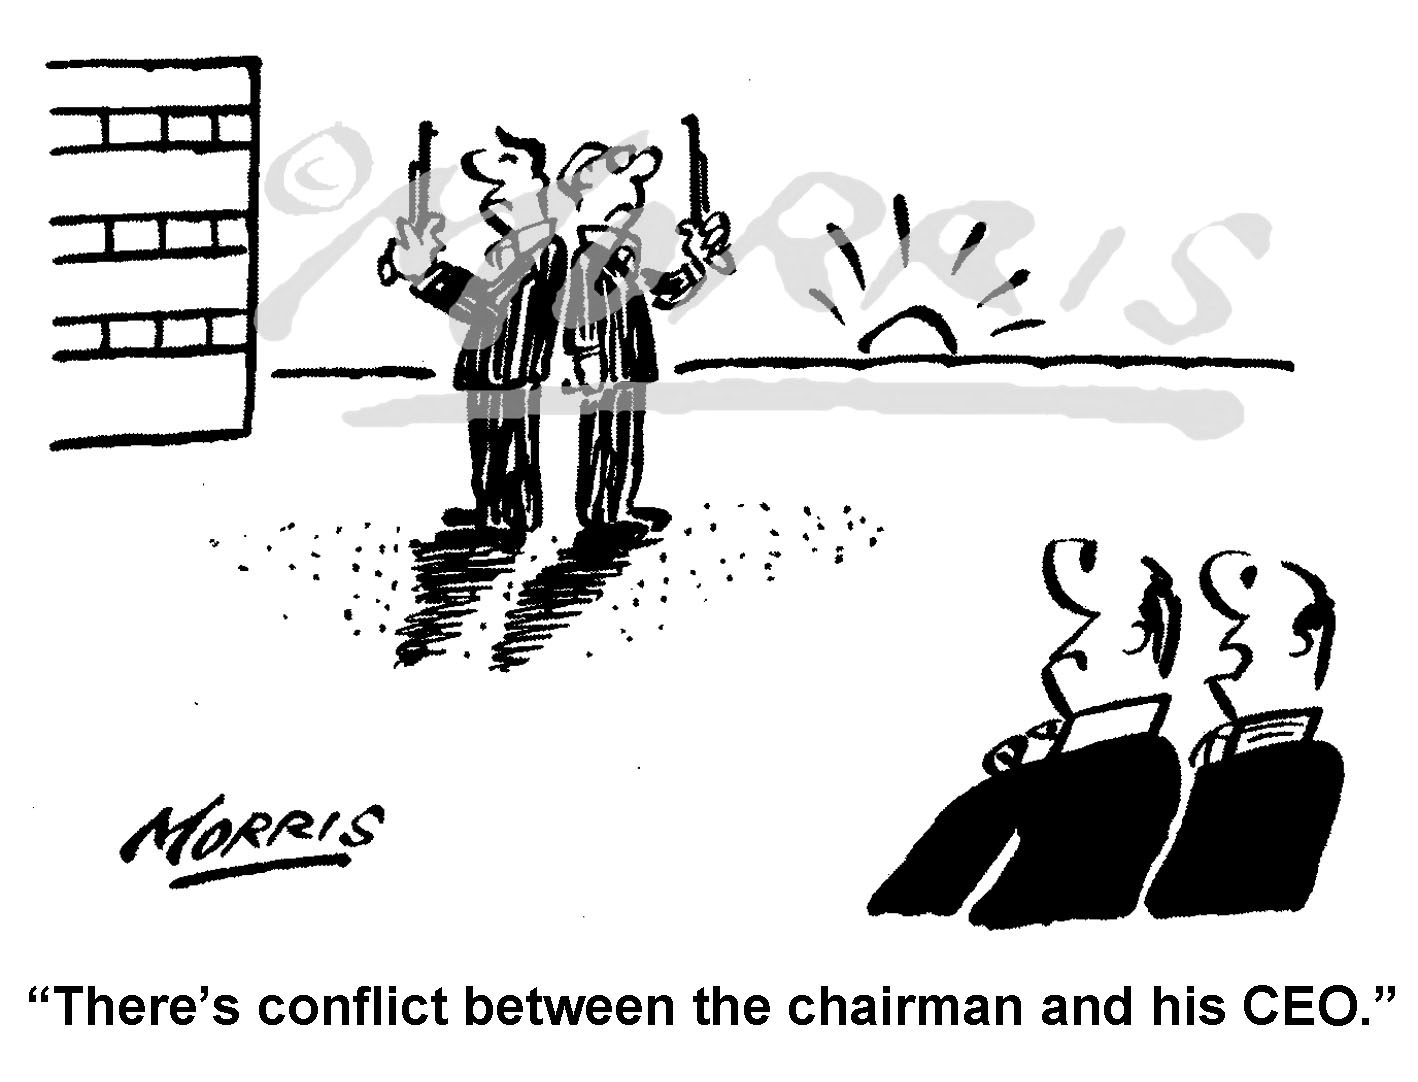 Chairman and CEO in conflict – Ref: 8352bw